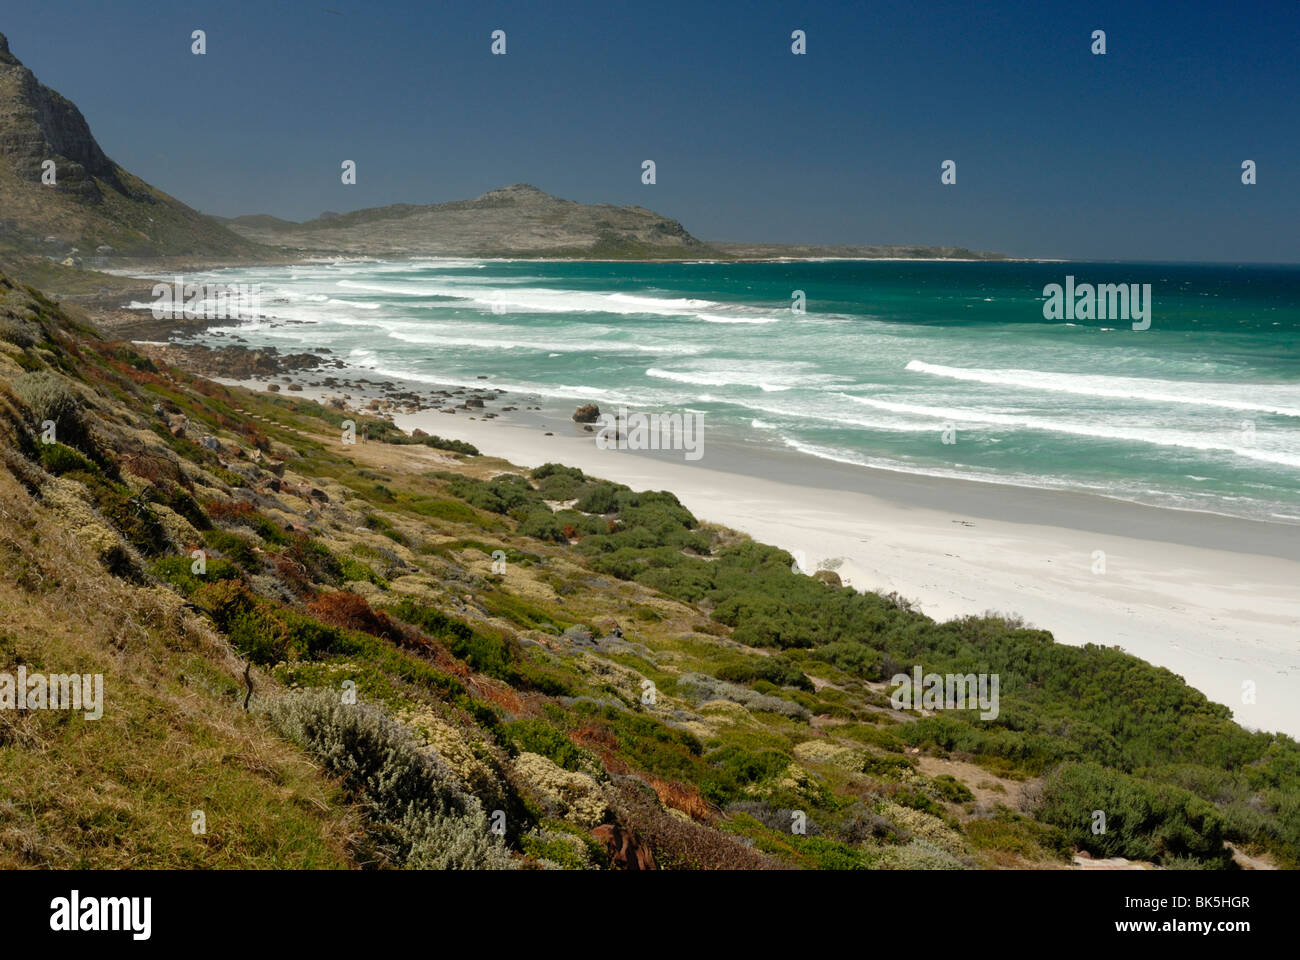 Witzandbay, Cape Town, South Africa, Africa - Stock Image